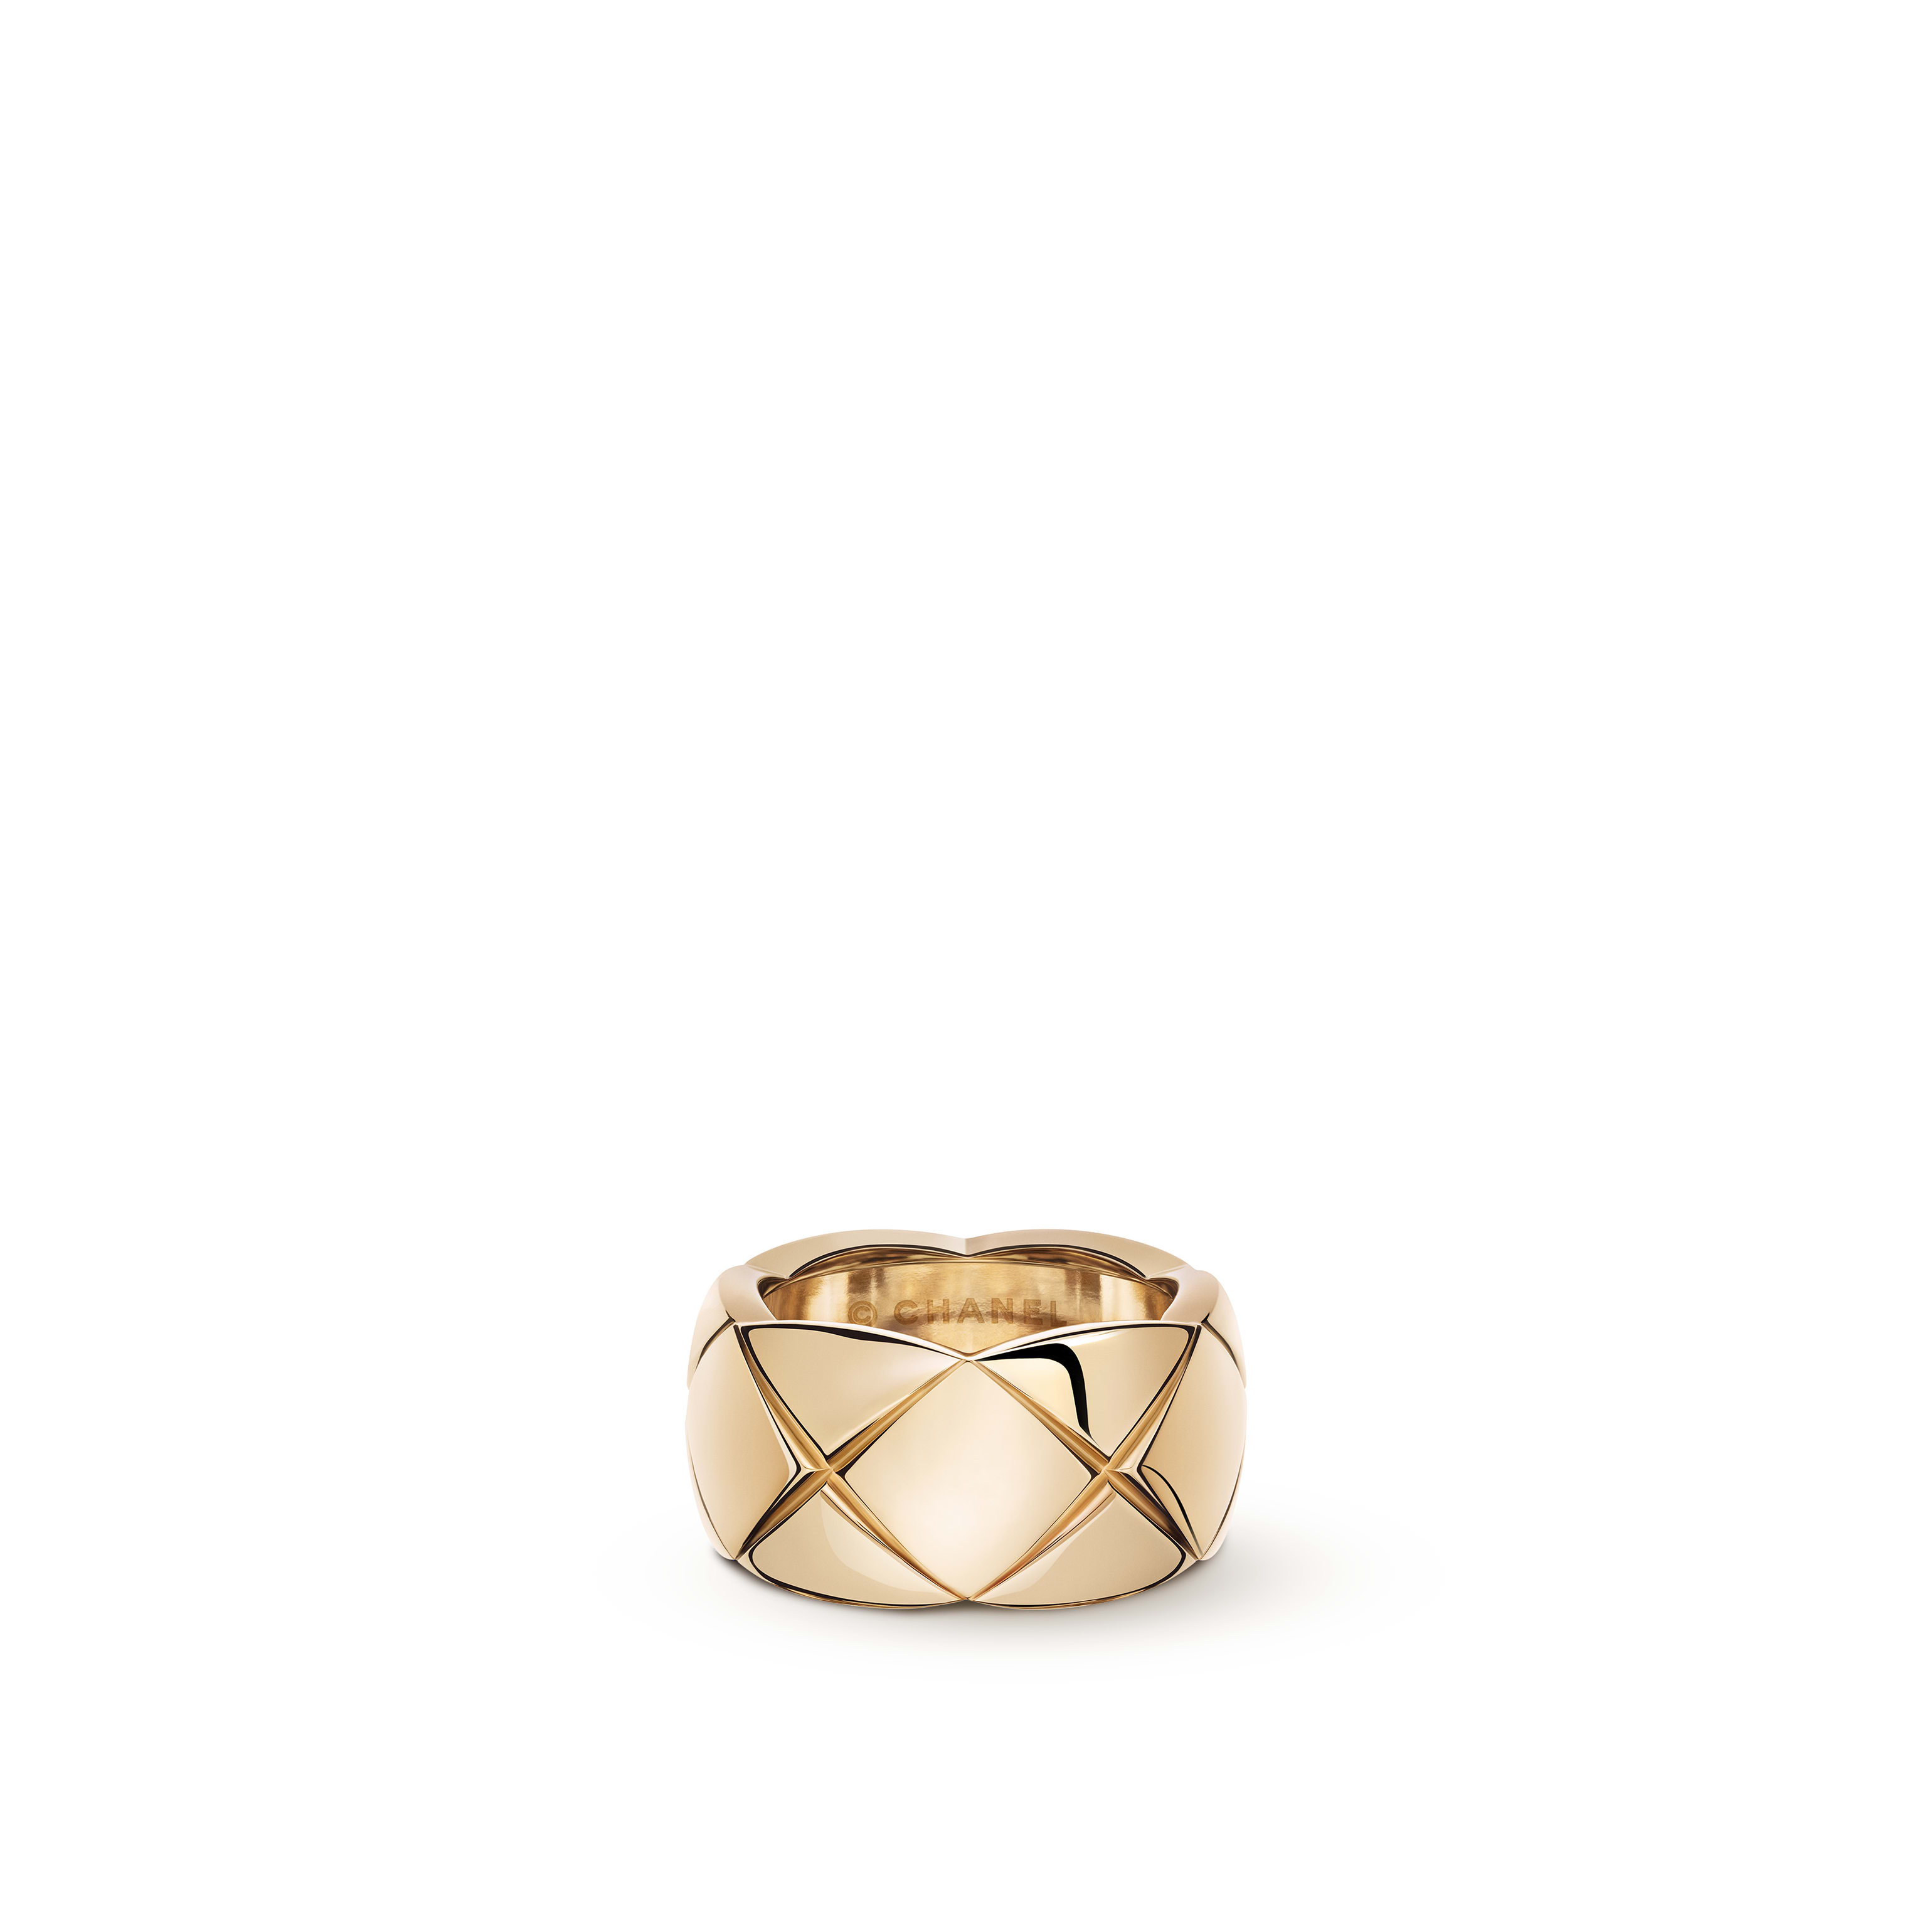 Coco Crush ring - Quilted motif, large version, 18K BEIGE GOLD - CHANEL - Default view - see standard sized version